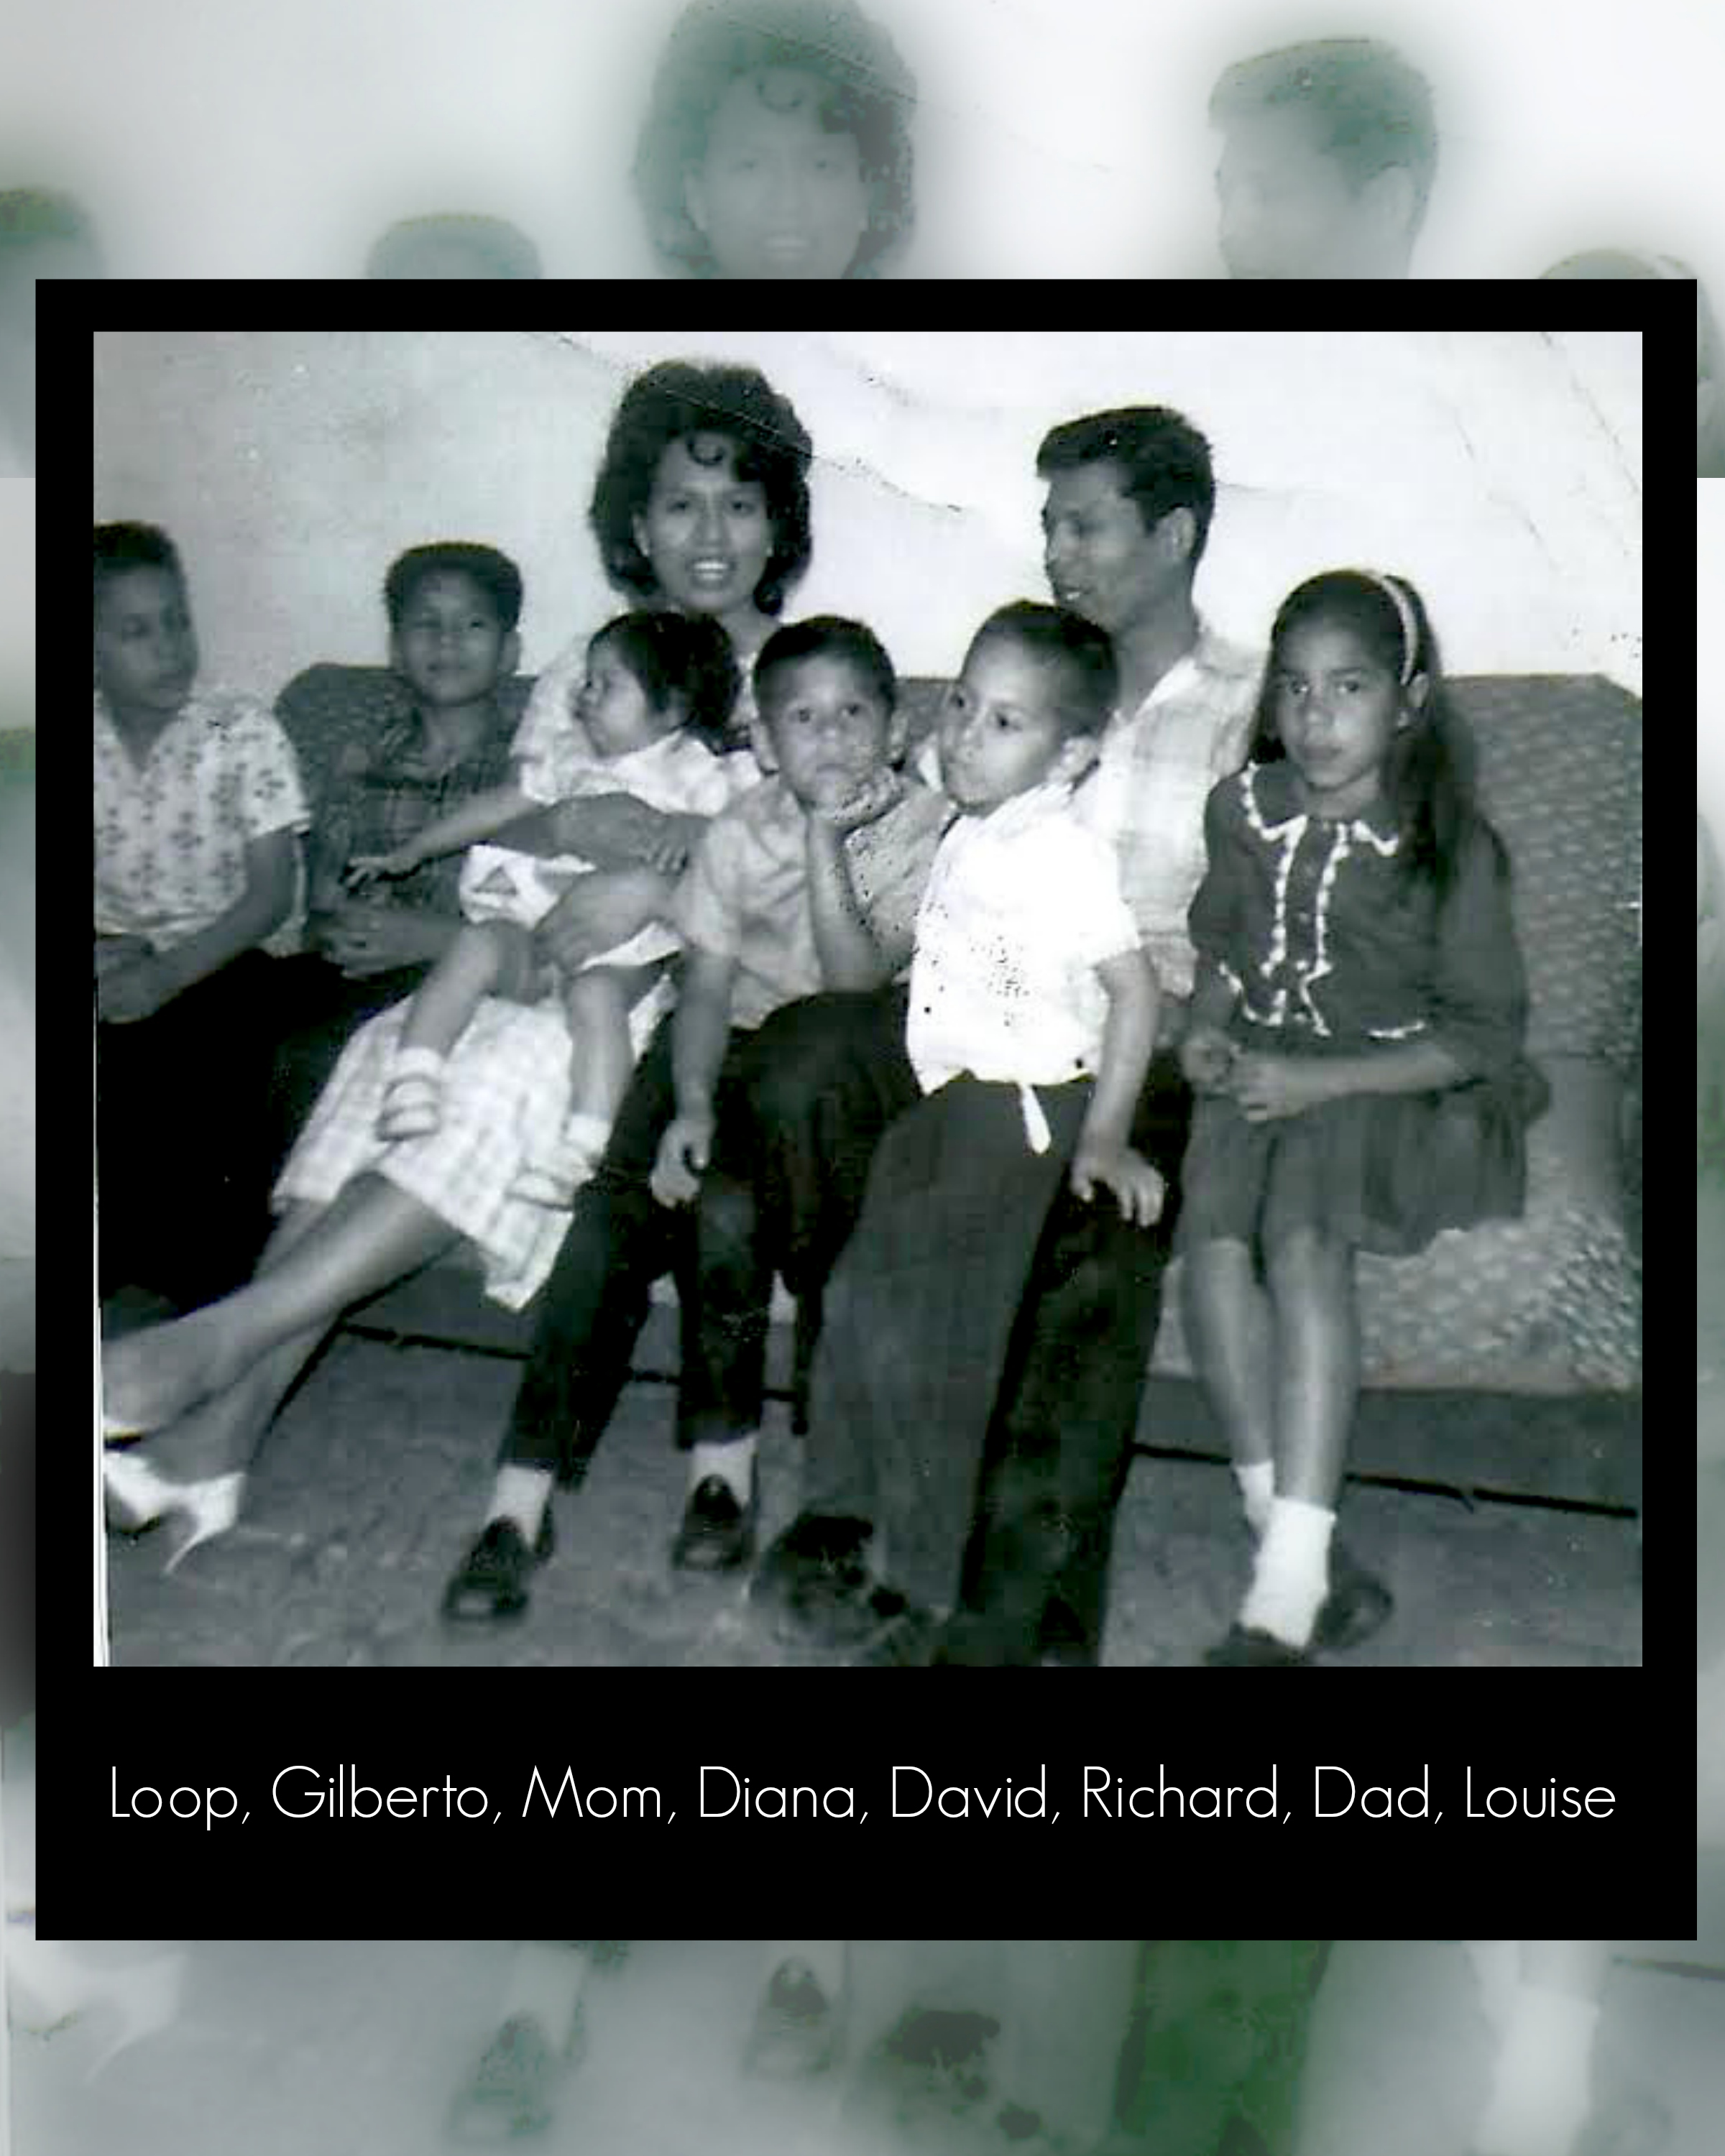 The Espinoza family in the 1960s.